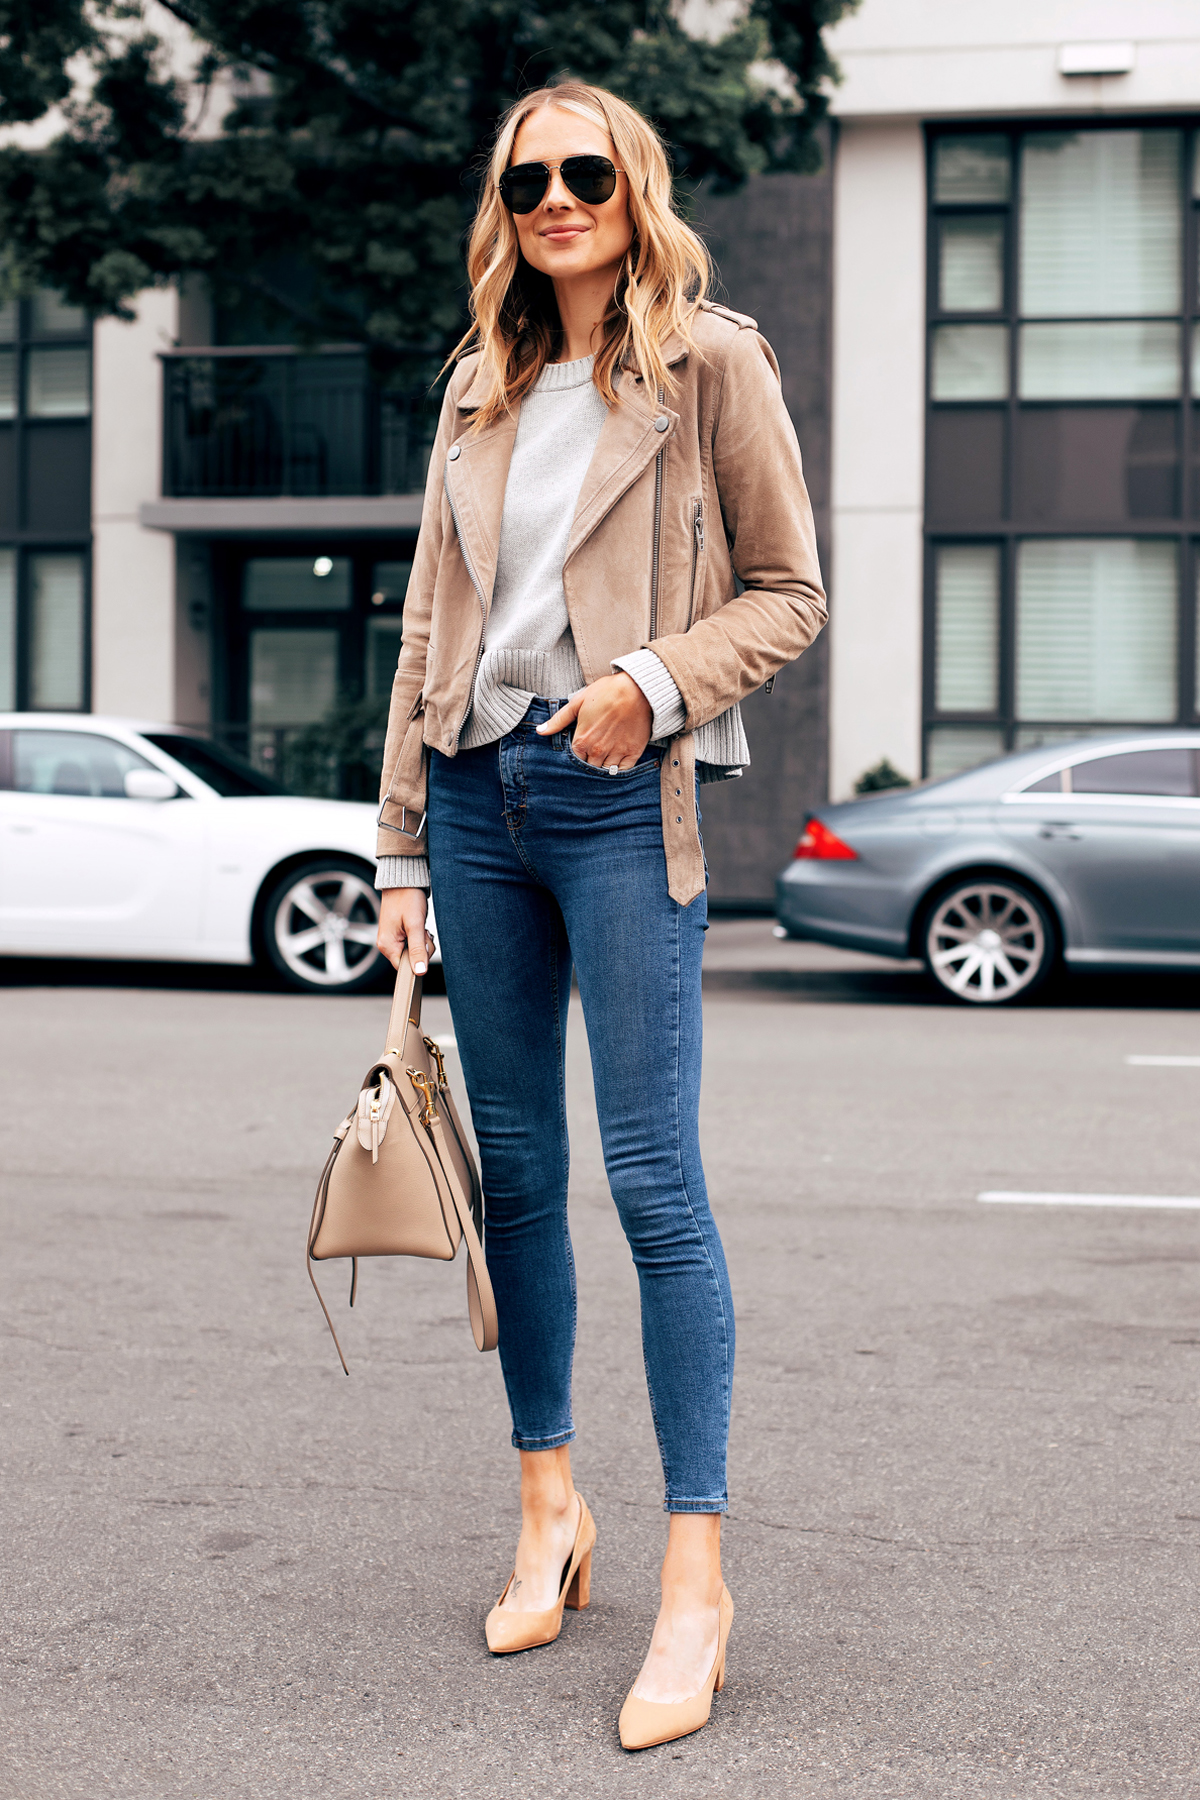 Fashion Jackson Capsule Wardrobe Wearing Blanknyc Tan Suede Moto Jacket Everlane Grey Sweater Topshop Denim Jamie Jeans Tan Pumps